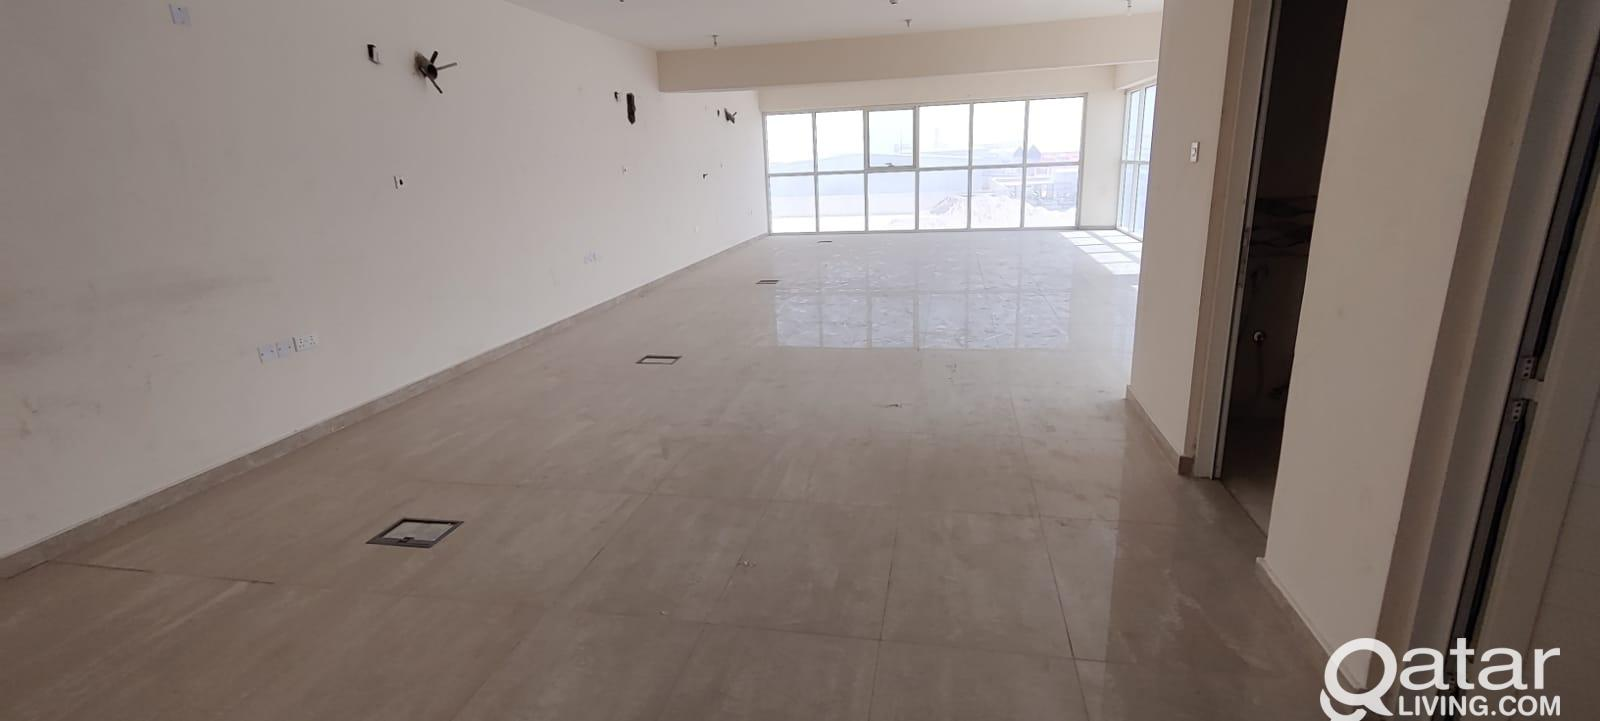 1100 Store with Showroom & 9 Room For Rent - Brand